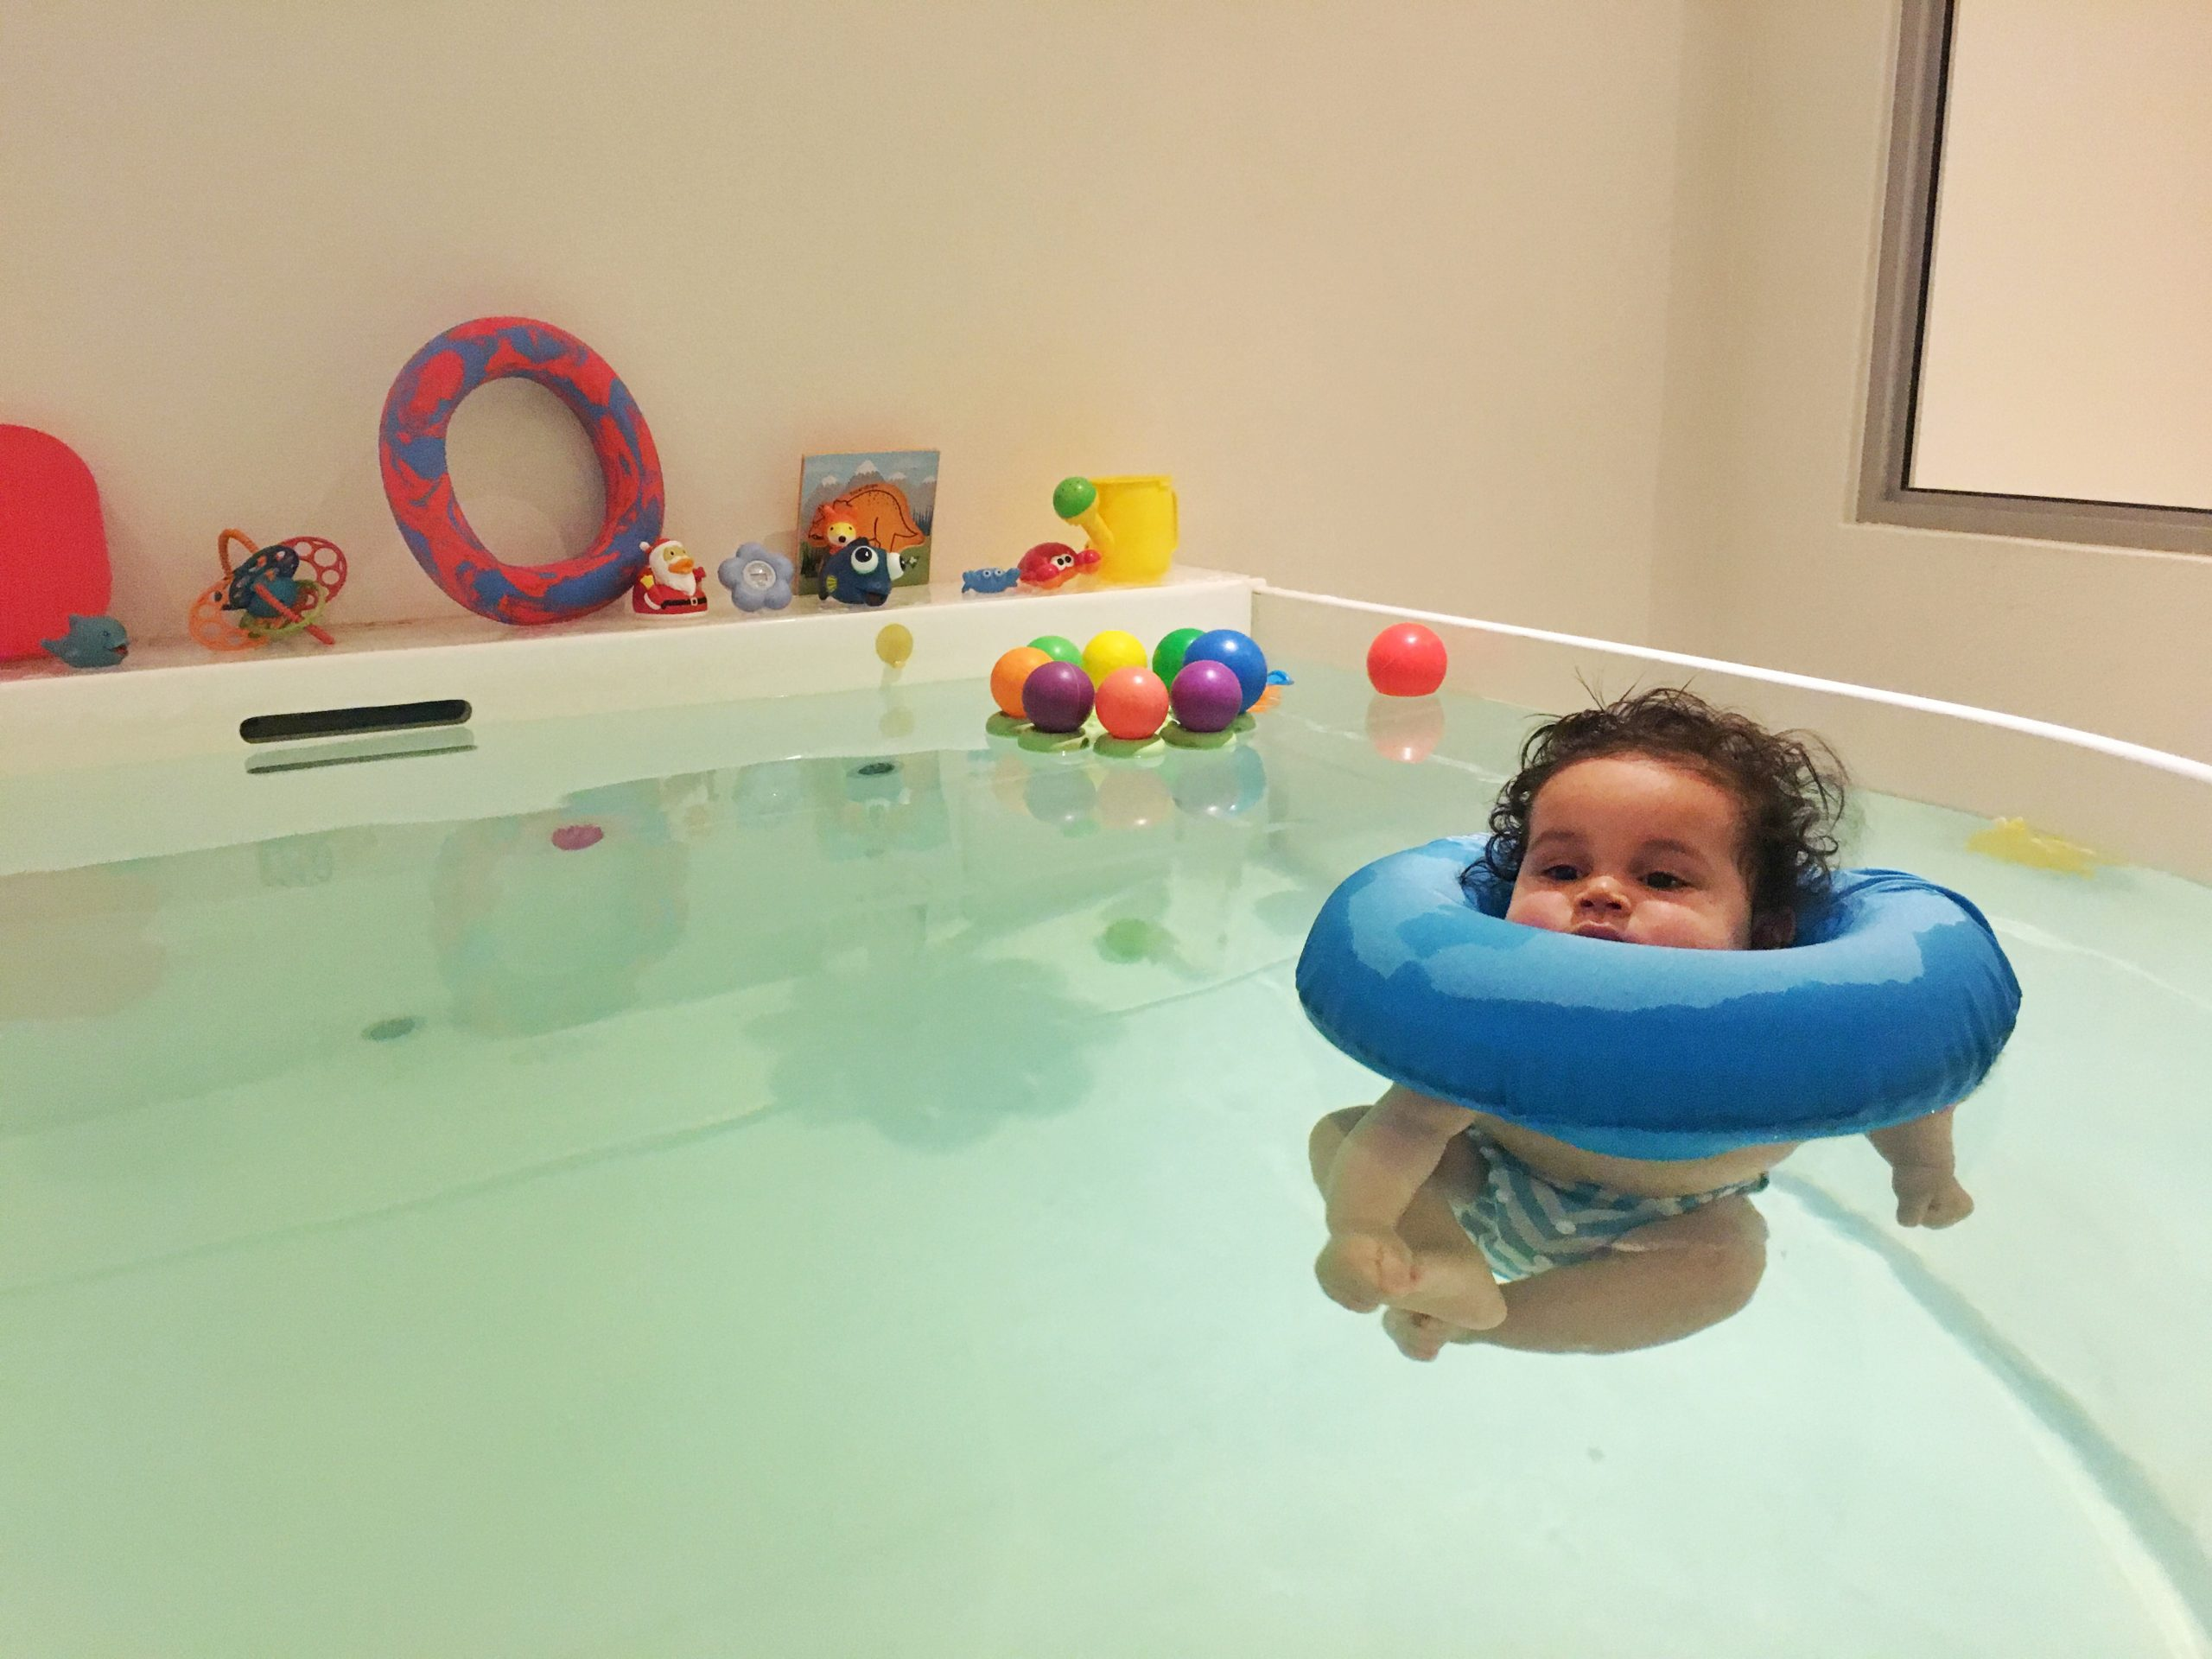 Rookie mom: Why your baby should do Infant Hydrotherapy